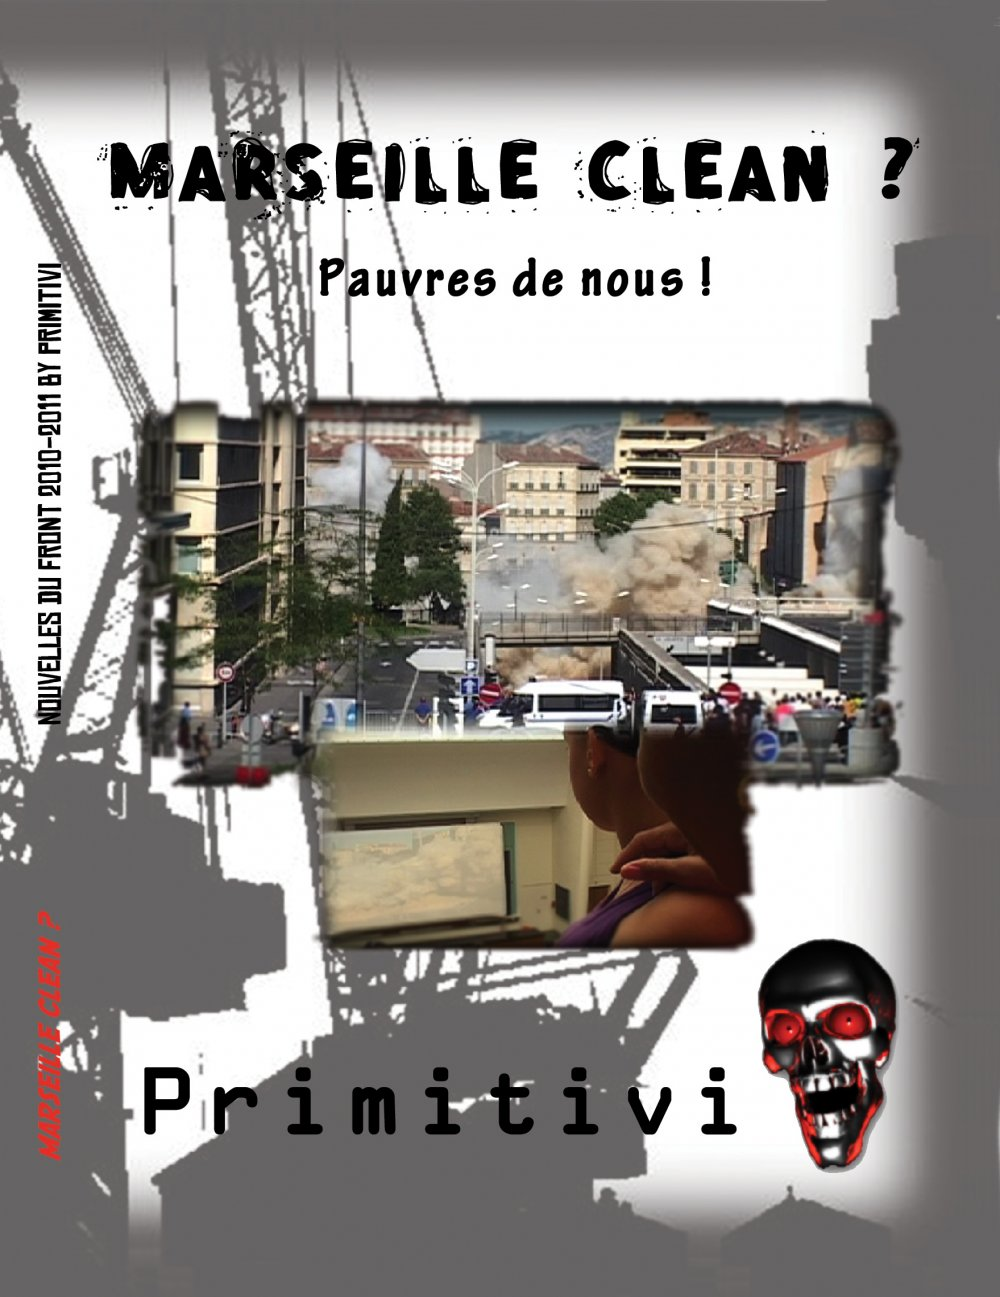 DVD1 MARSEILLE CLEAN ?